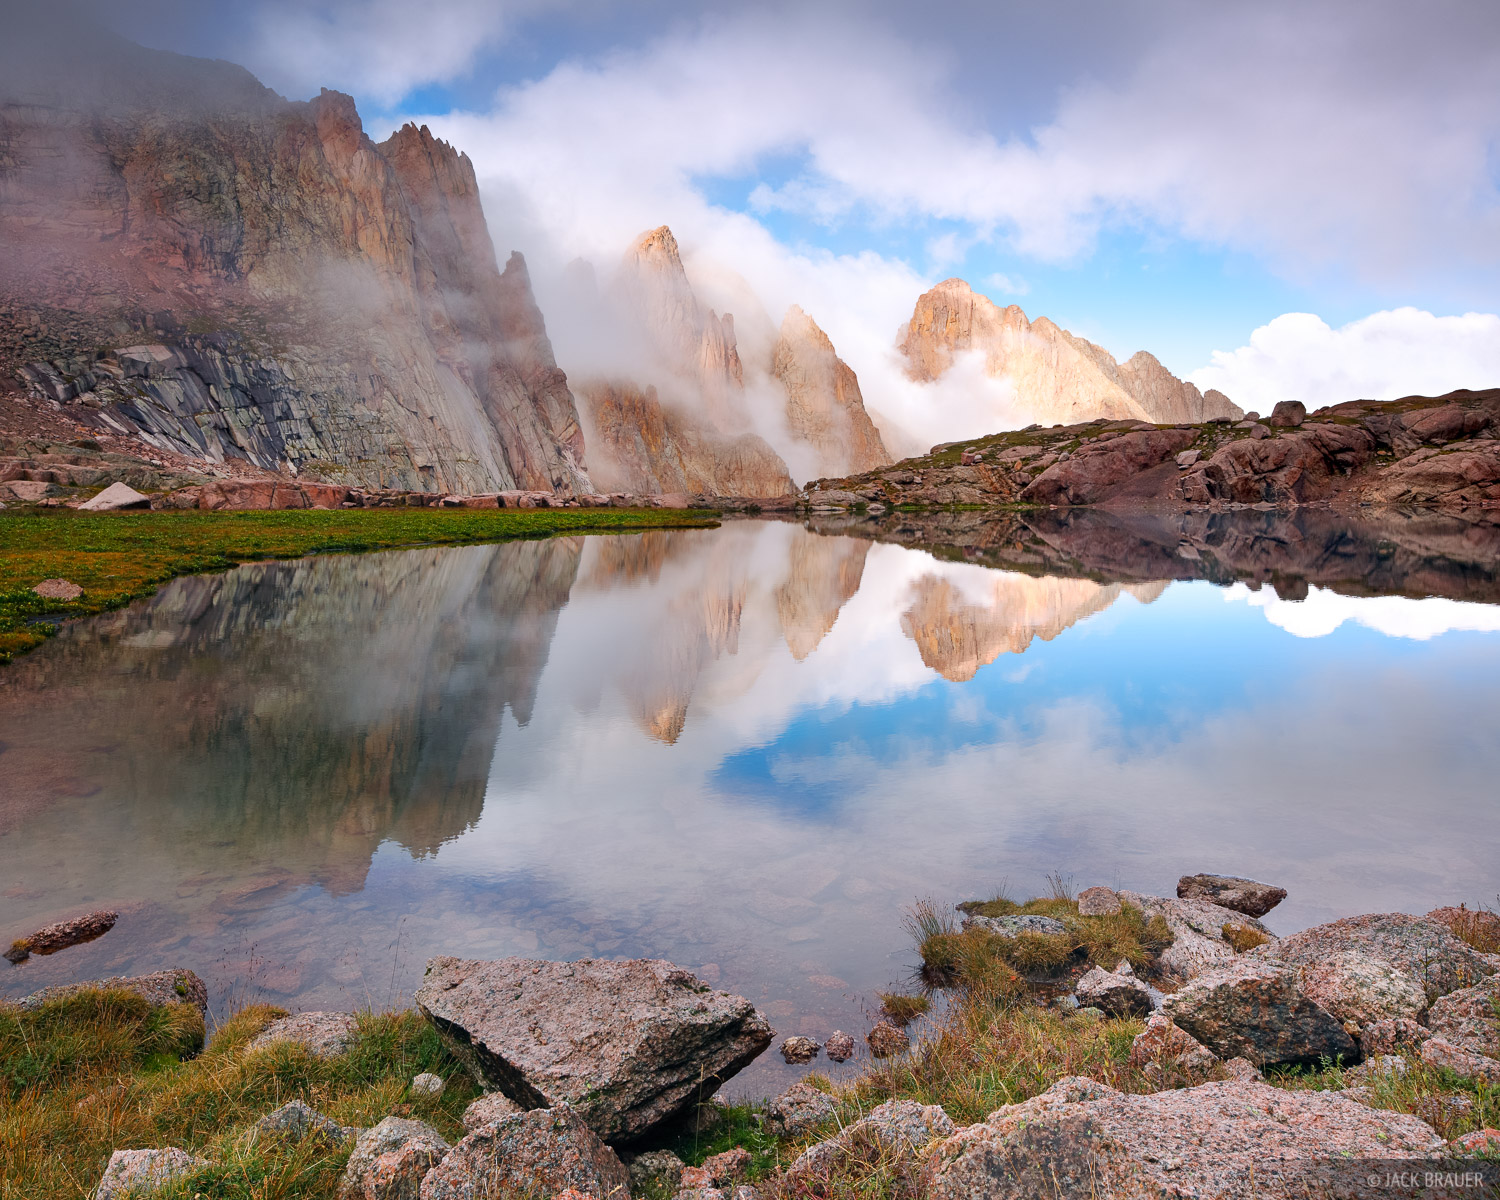 Needle Mountains, San Juan Mountains, Colorado, Weminuche Wilderness, clouds, reflection, photo